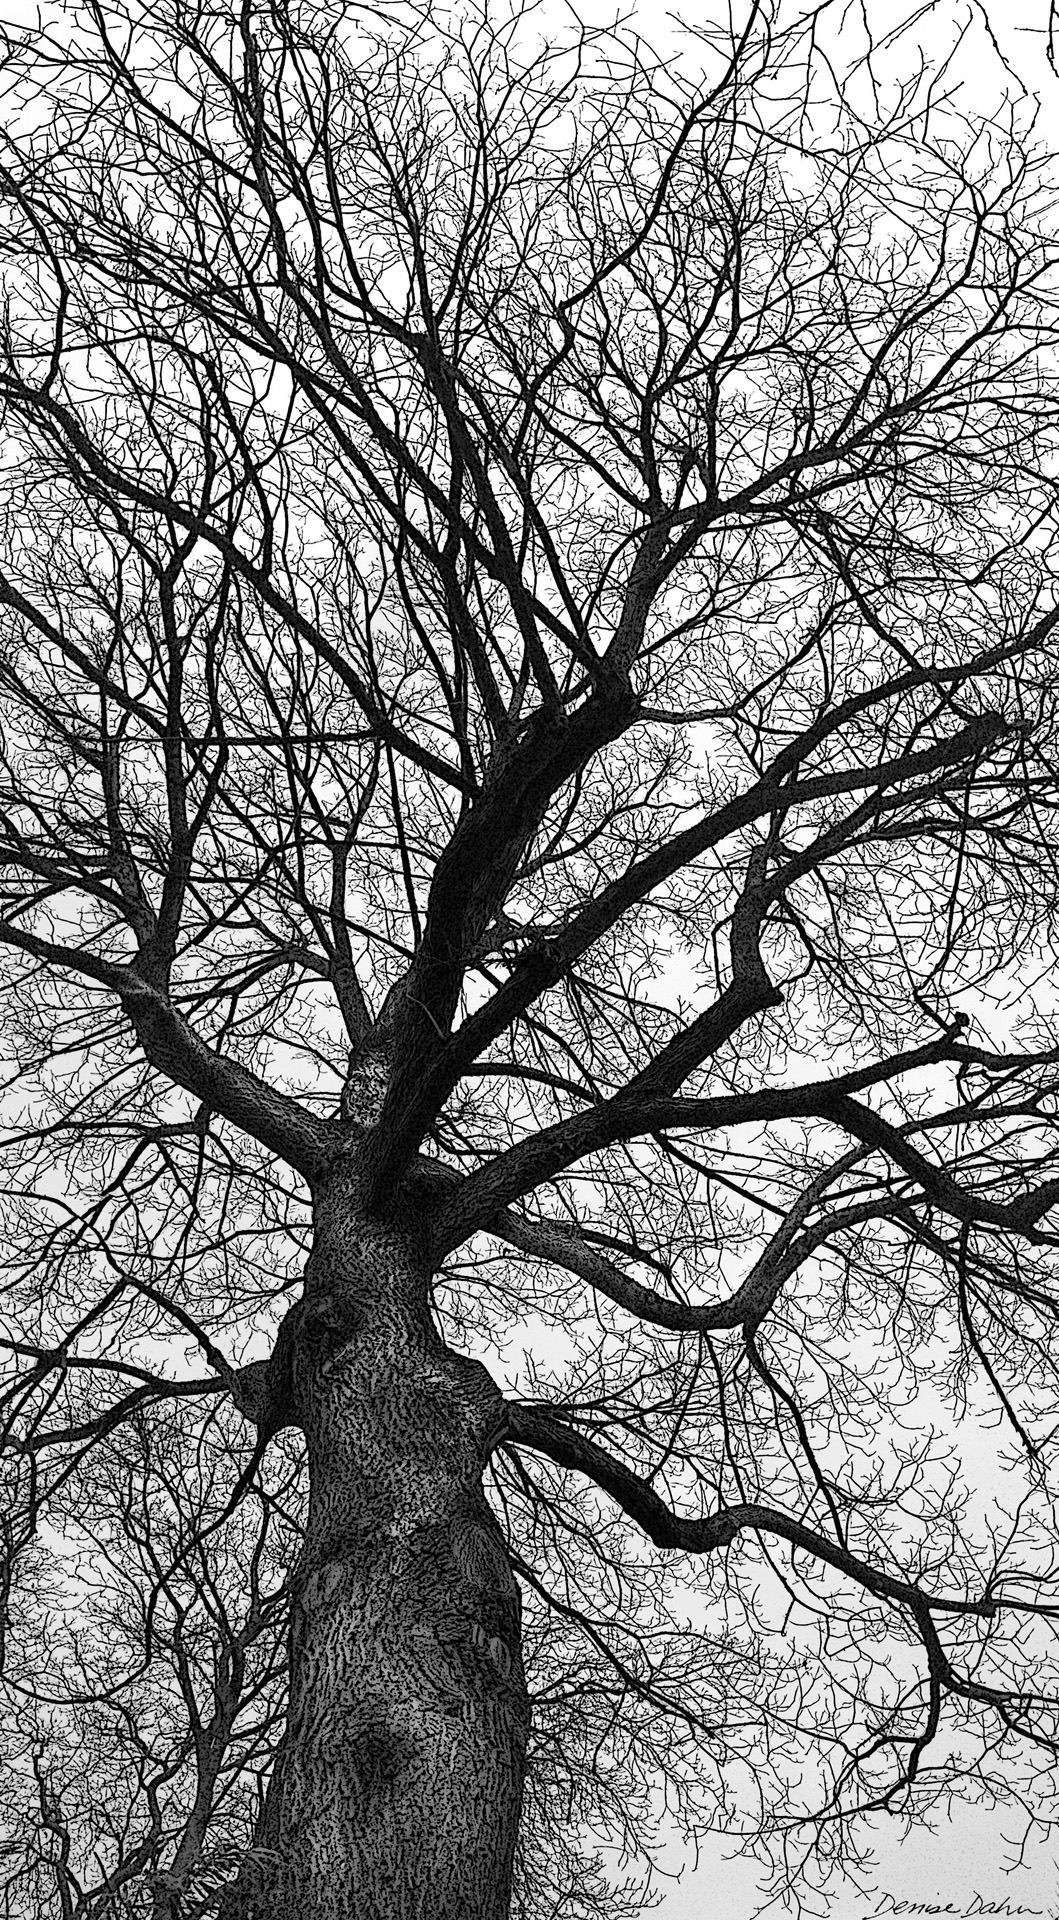 English Walnut is actually a native of Central Asia, brought to Europe by Alexander the Great. This one seems to have come with its own Dryad. When I imported this photo into Photoshop and applied a filter, I was startled at the image that emerged. I highlighted it a bit with the dodge and burn tools and voila! The tree-spirit of Walnut Avenue!